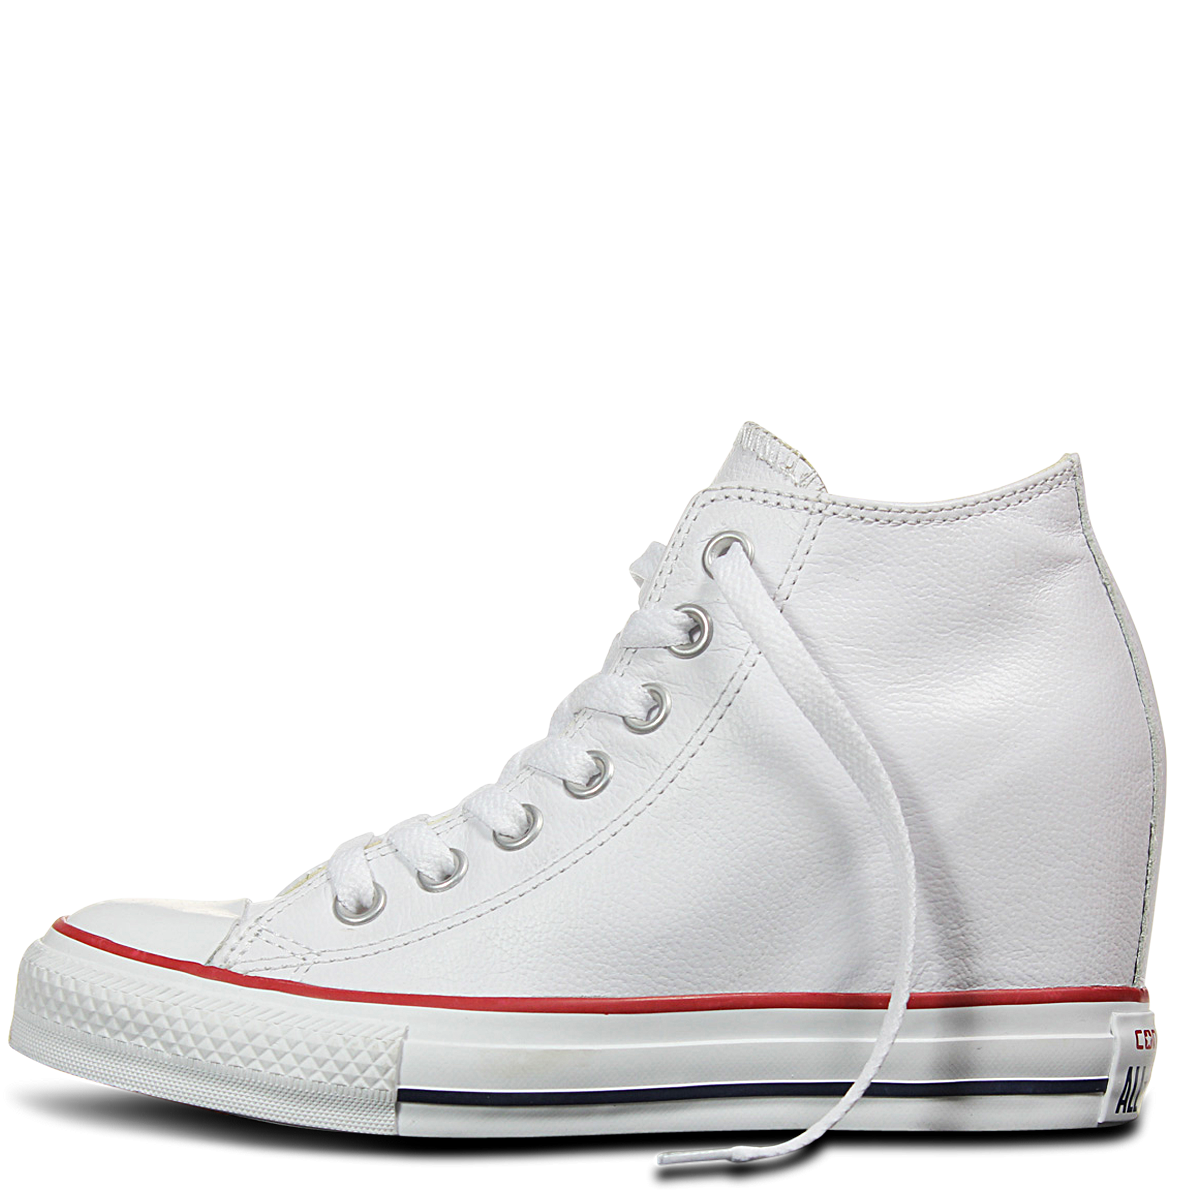 3d5cede5026d ... Converse Chuck Taylor All Star Lux Mid Hi White Leather Wedge 549560C  Smooth Leather Famous Rock ...